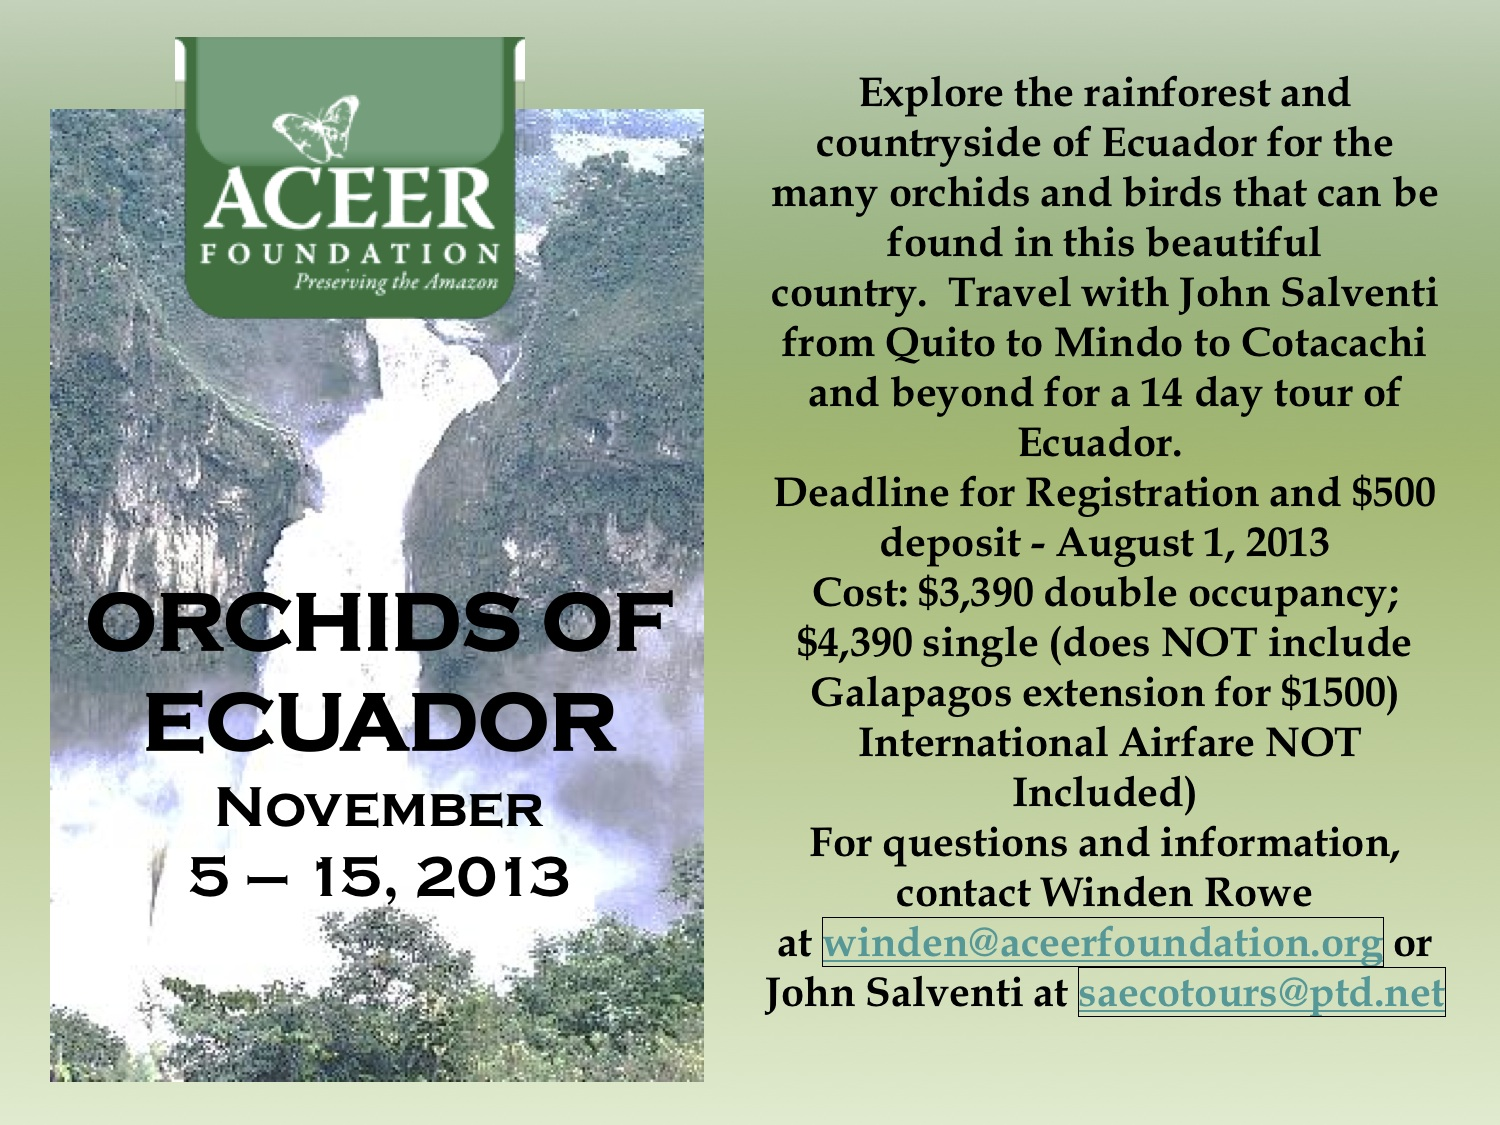 ACEER: Orchids of Ecuador